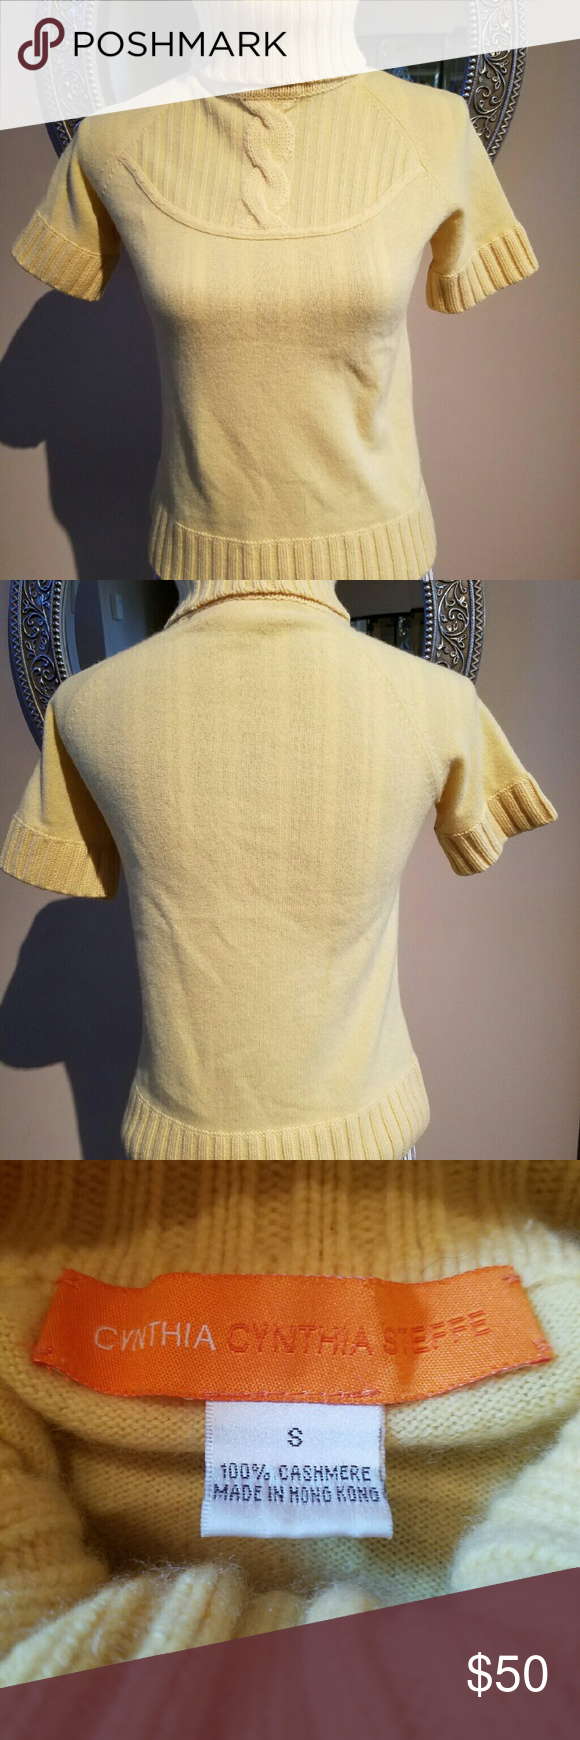 Cynthia Steffe Pale Yellow Cashmere Sweater | Turtlenecks ...